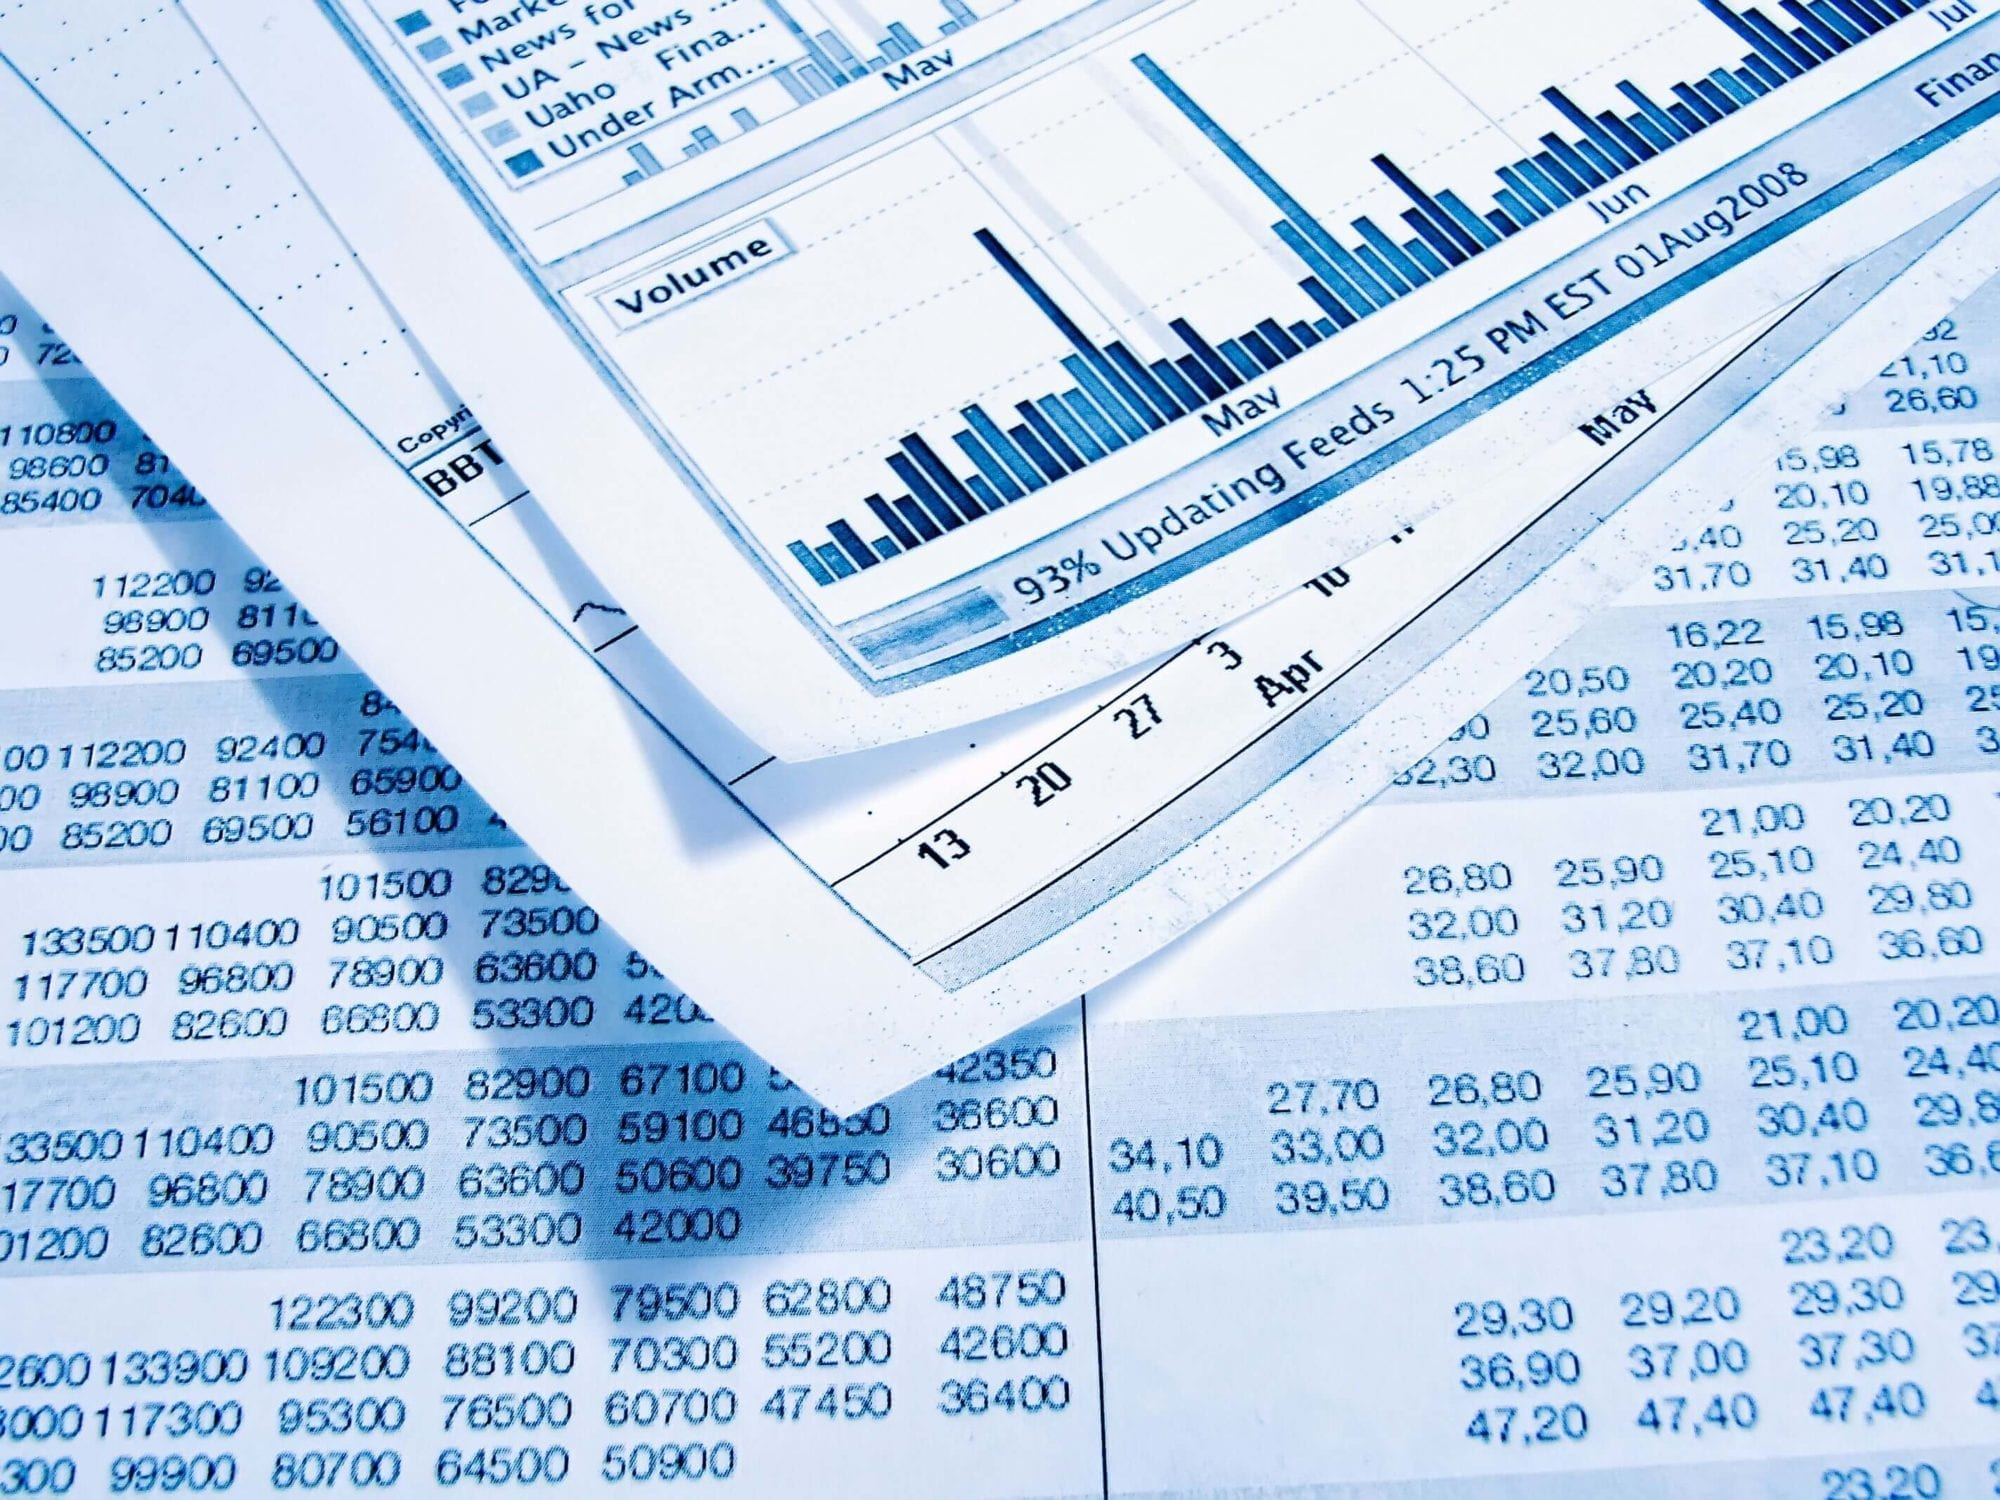 New accounting resources in the Entrepreneur's Toolkit